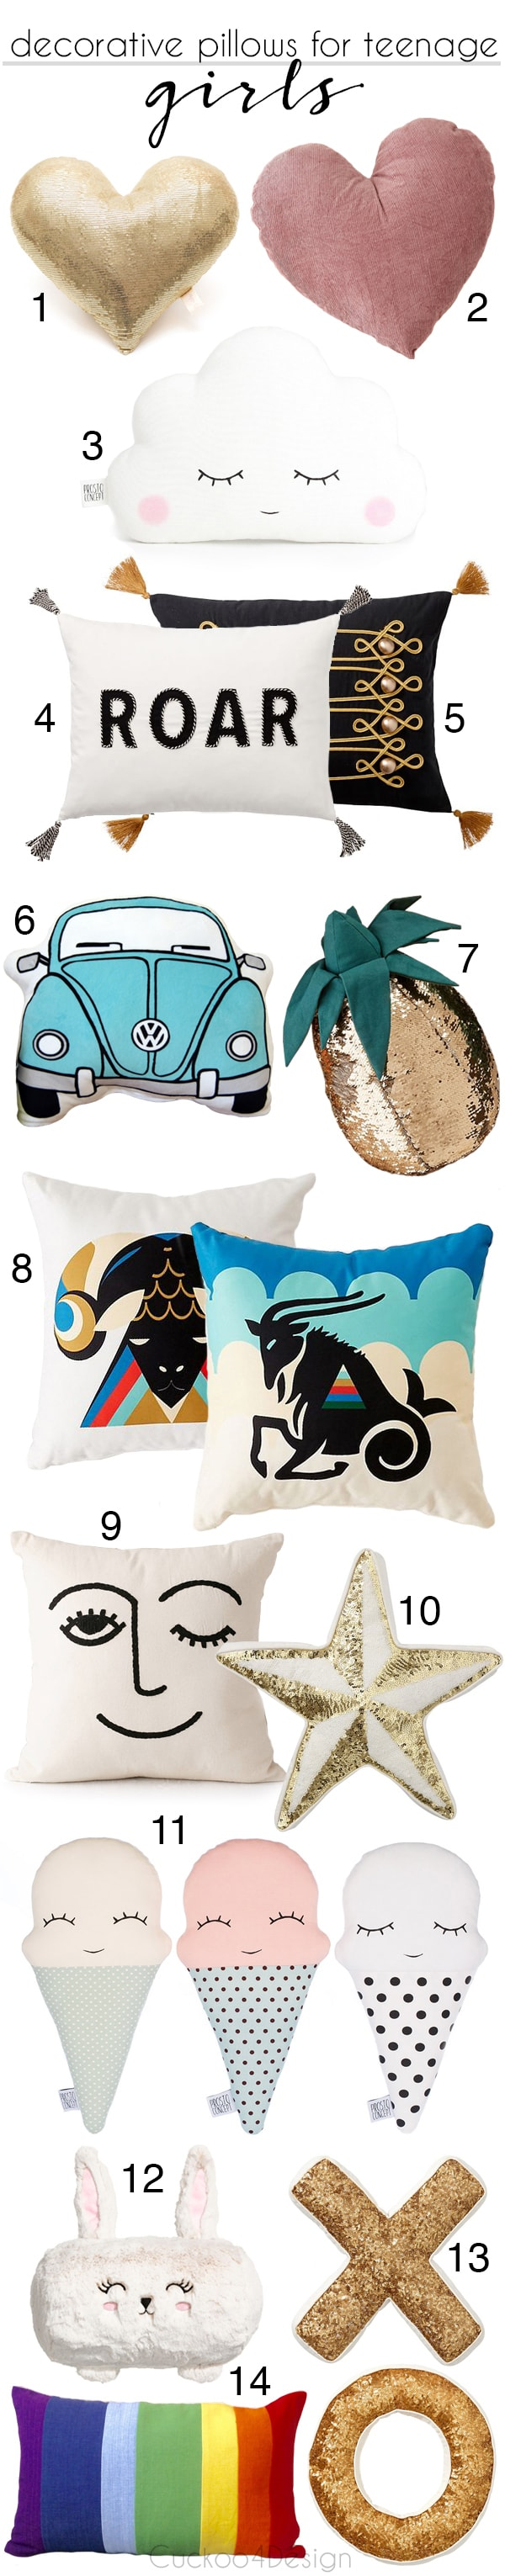 best decorative throw pillows for teenage girls